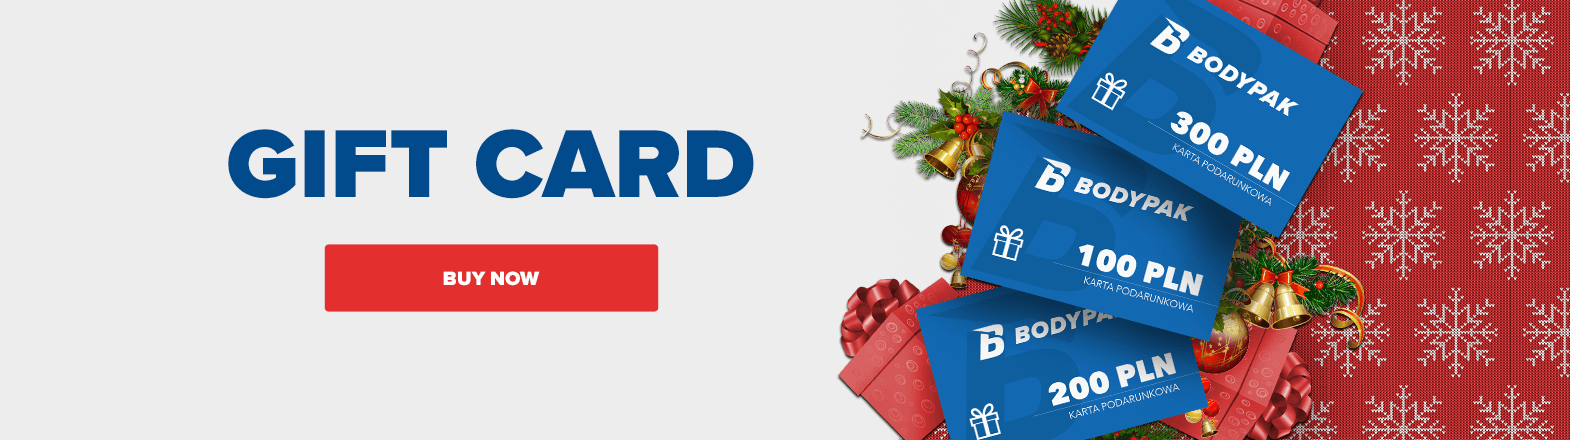 GIFT CARDS AS FANTASTIC GIFT